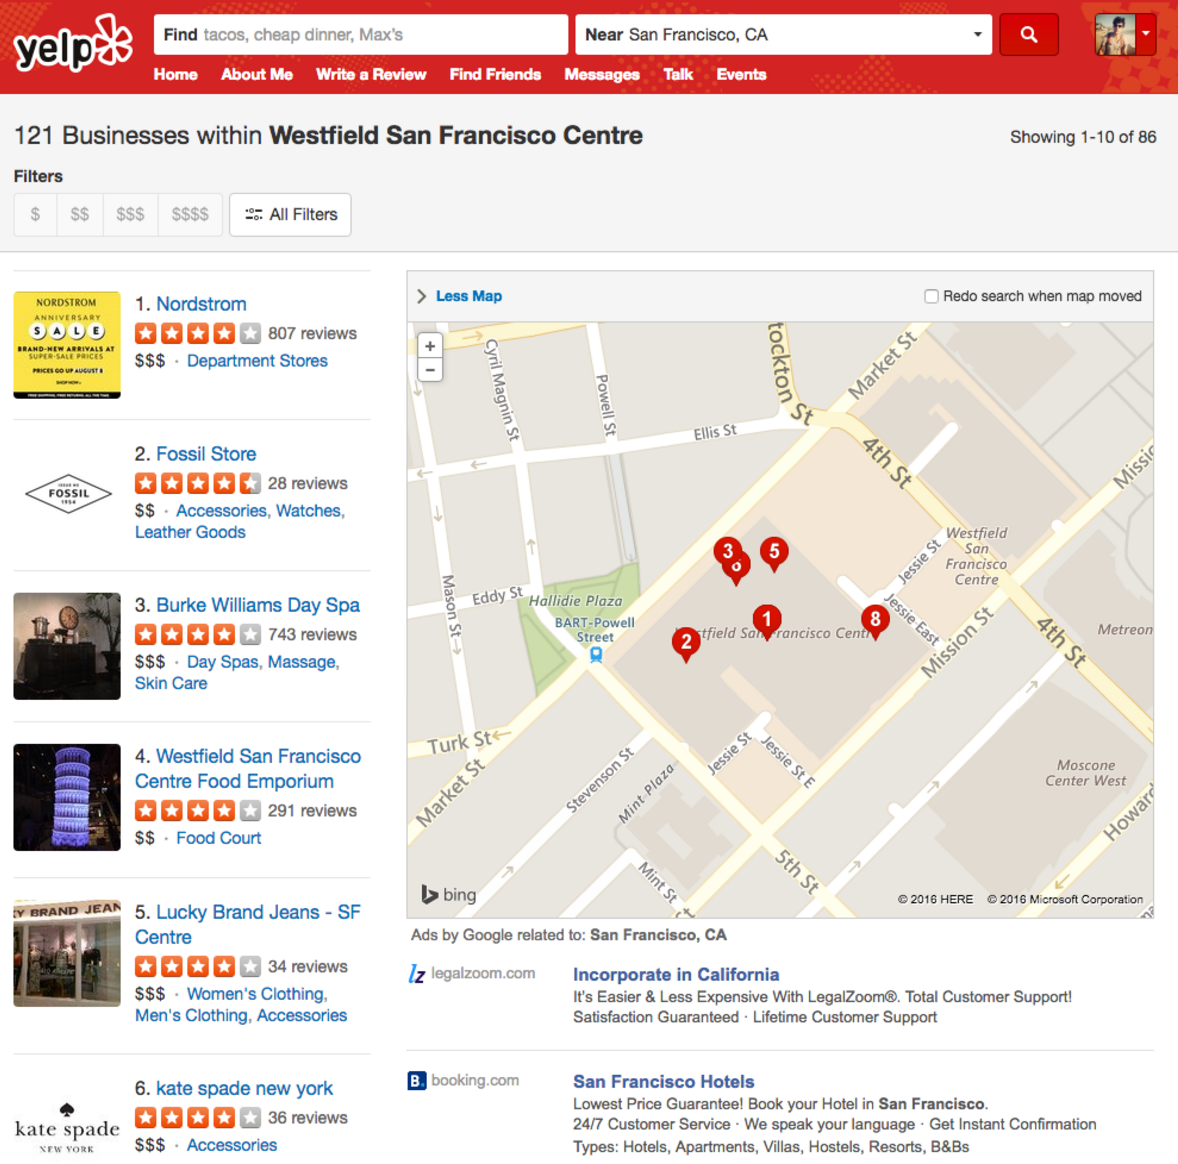 Yelp Screenshot displaying local businesses within a mall